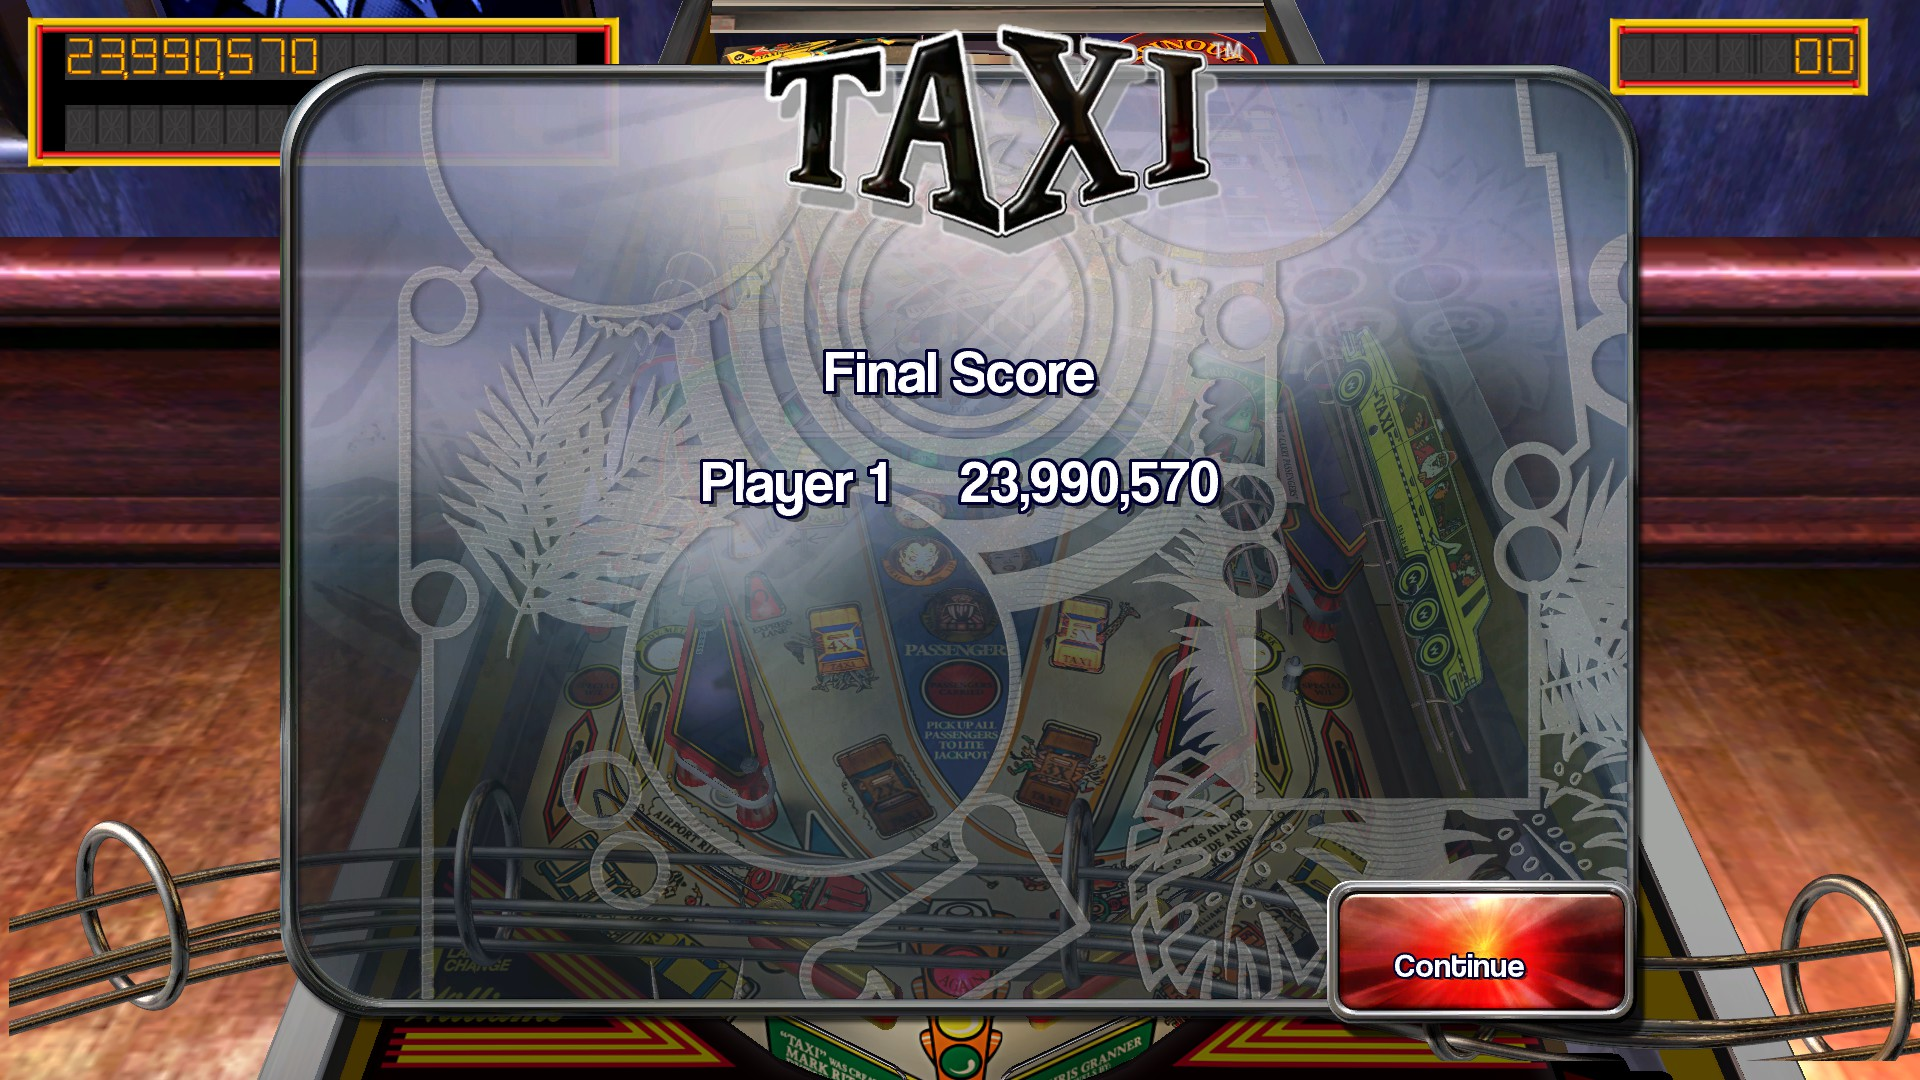 TheTrickster: Pinball Arcade: Taxi (PC) 23,990,570 points on 2016-03-02 07:36:13